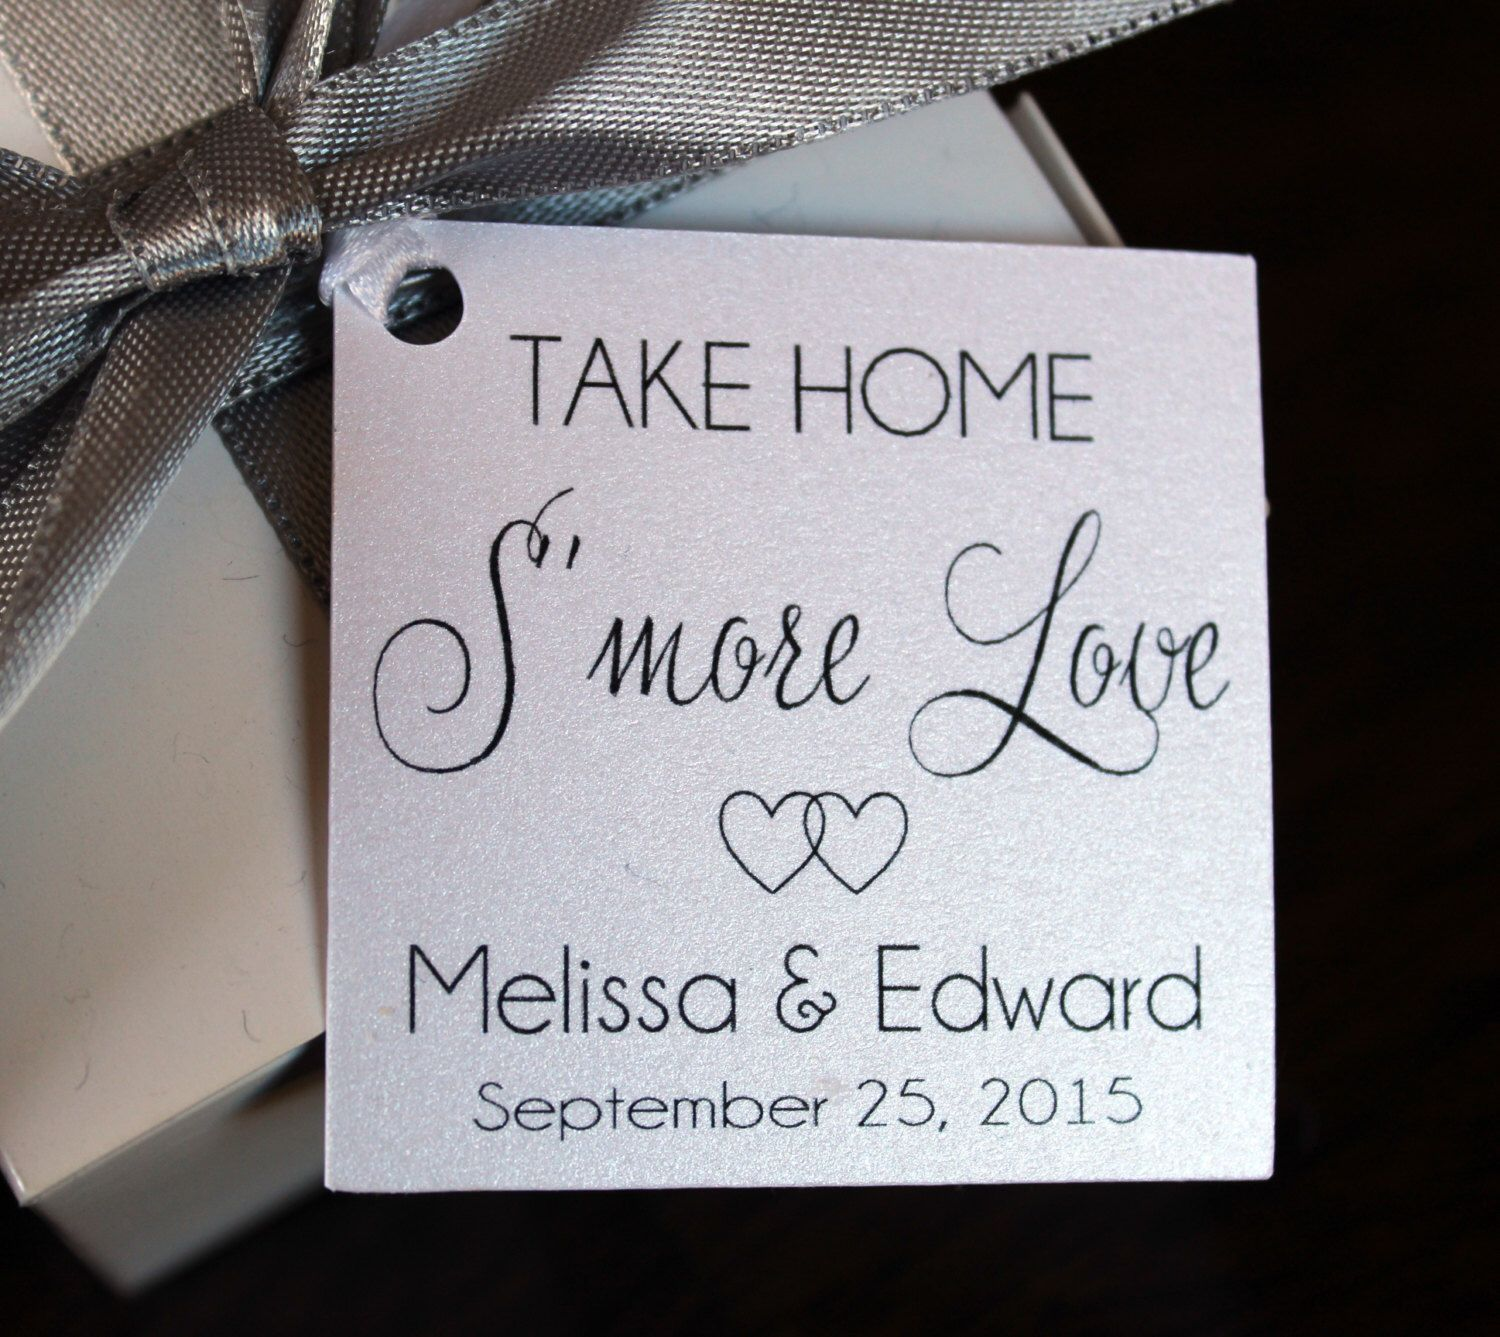 Weddgin Favor Tags - Wedding Favor Thank You Tags - Smore Love Favor ...